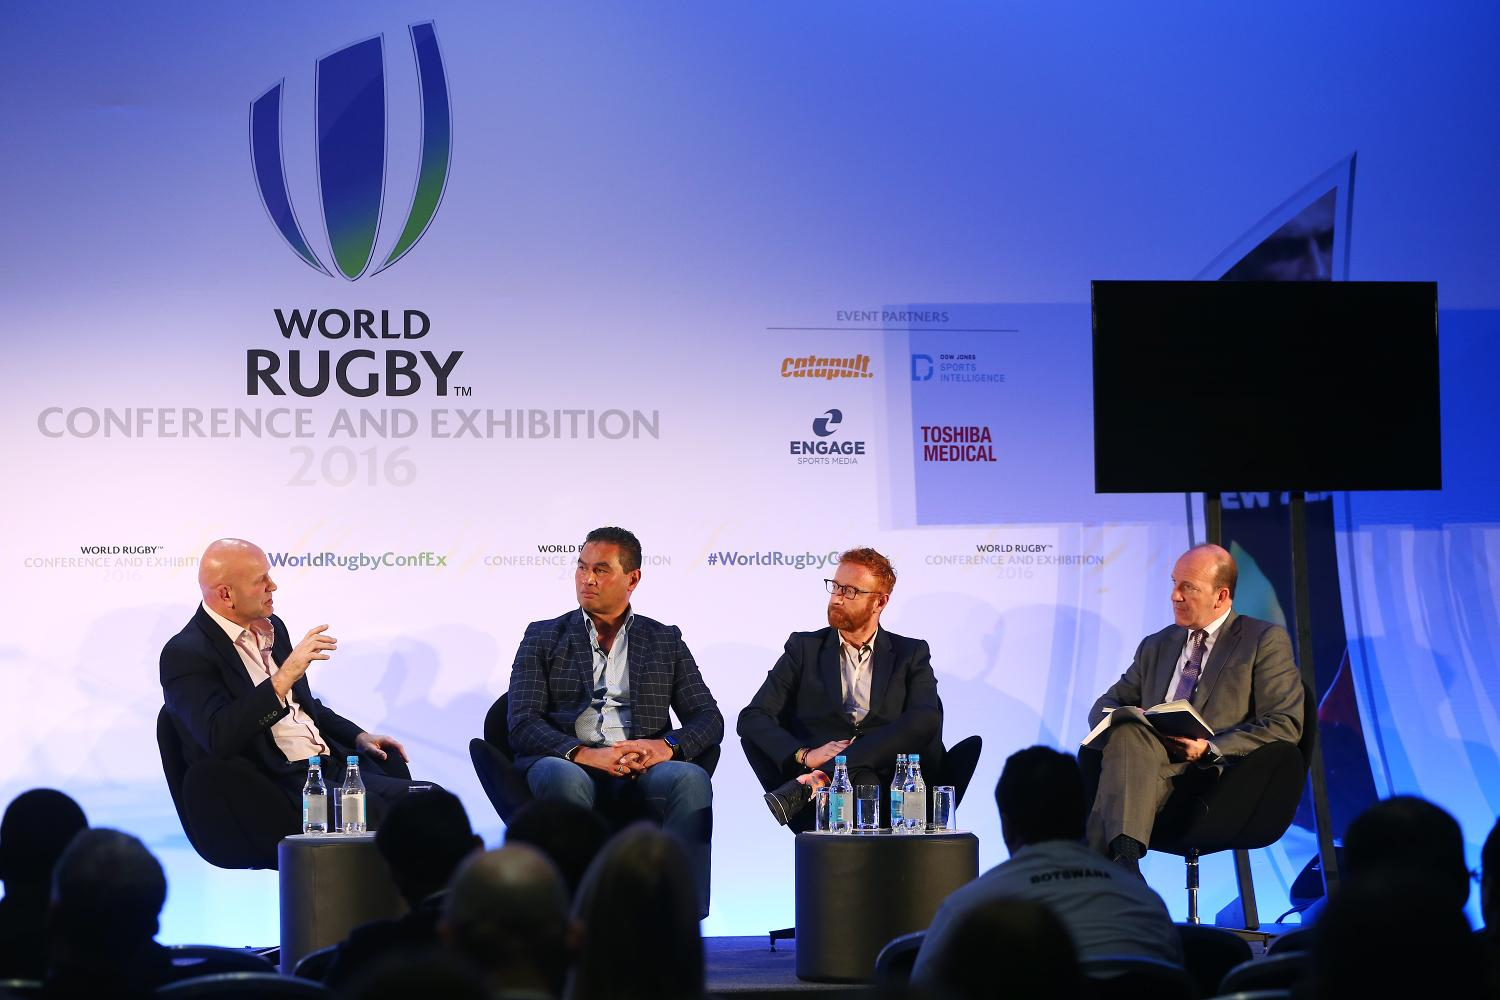 World Rugby Conference and Exhibition 2016 - Day 1